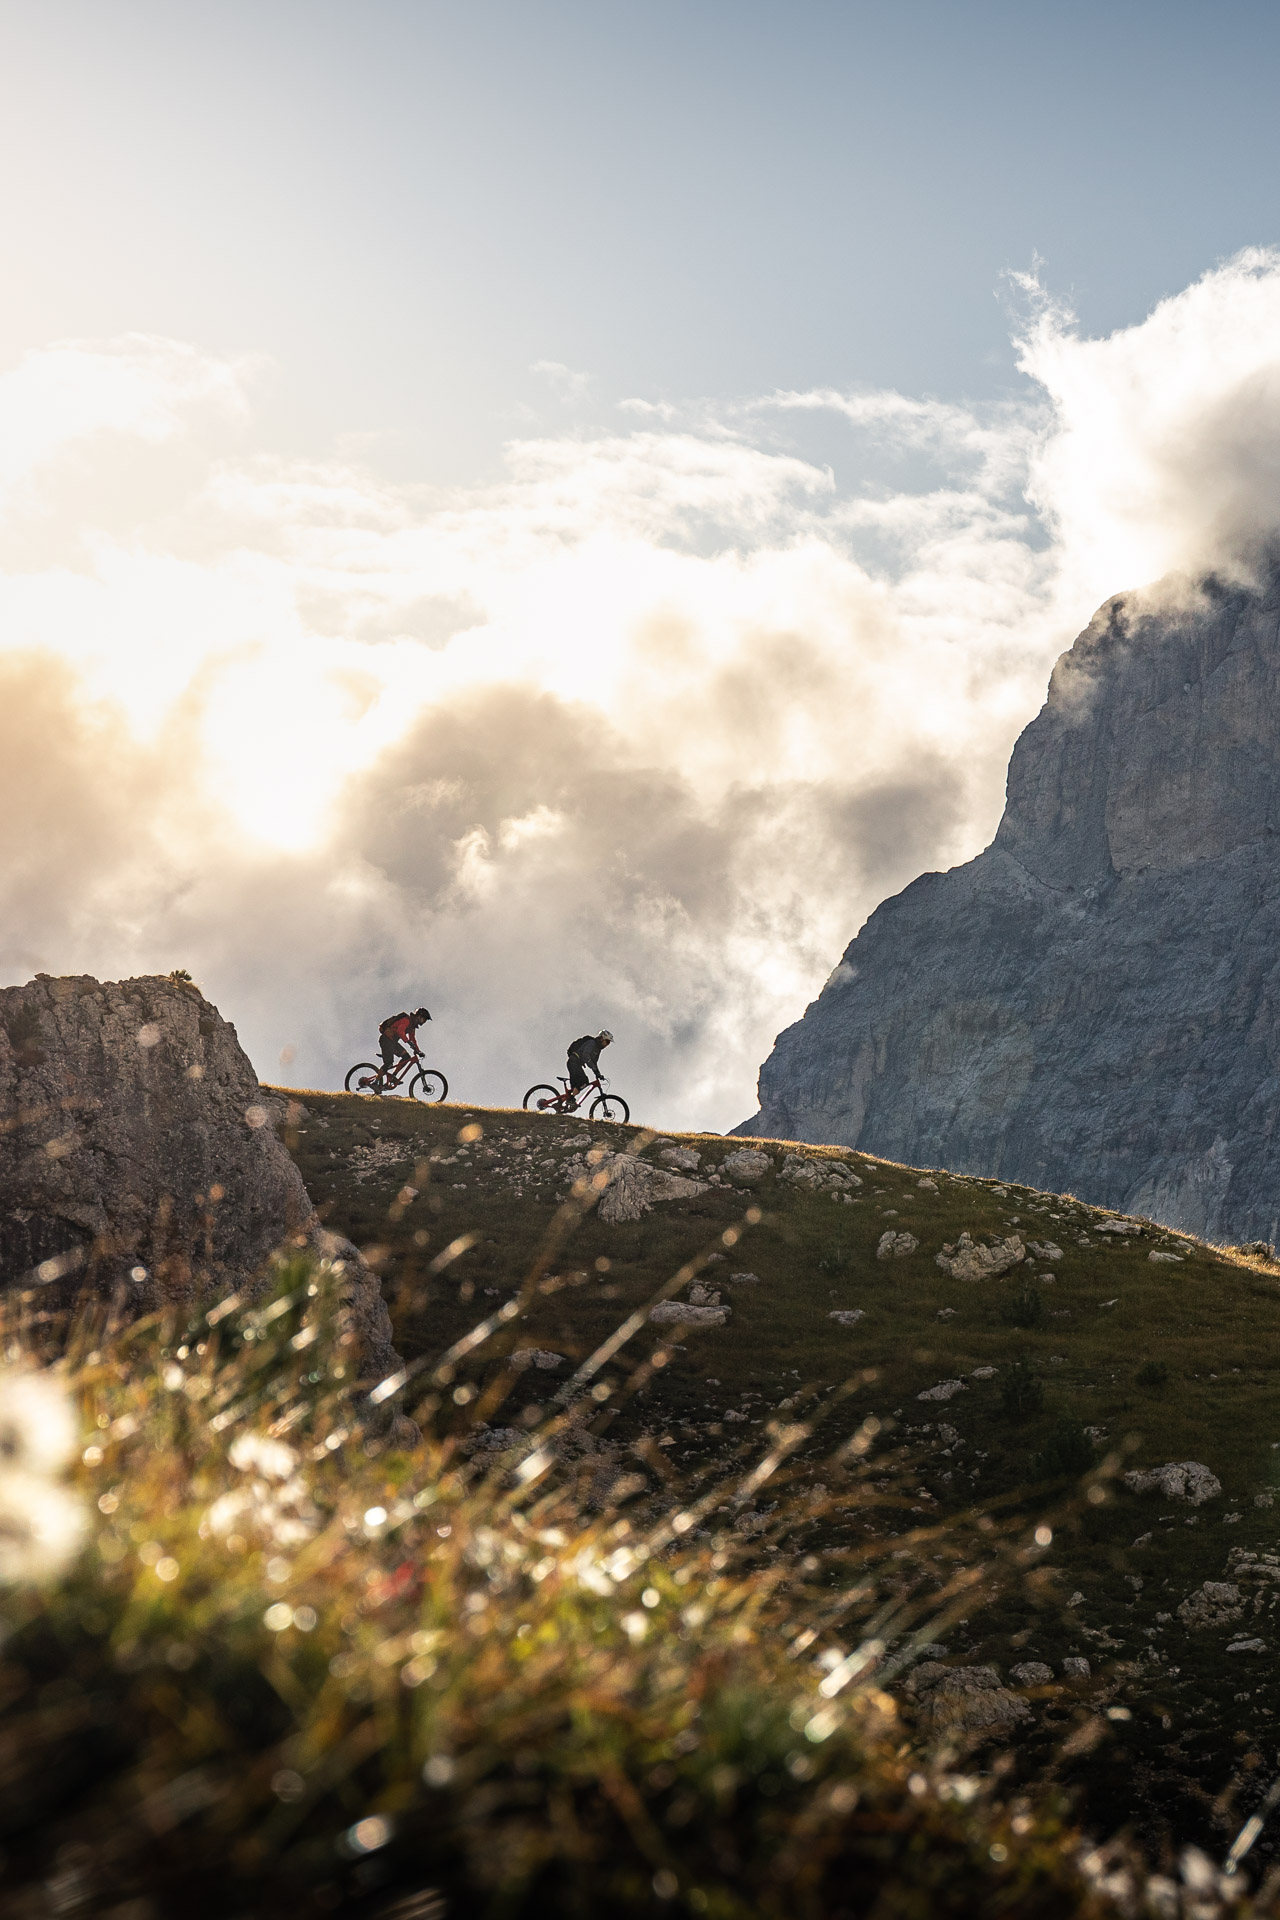 720-Protections-Passo-Sella-Dolomites-2019-_W5A1633